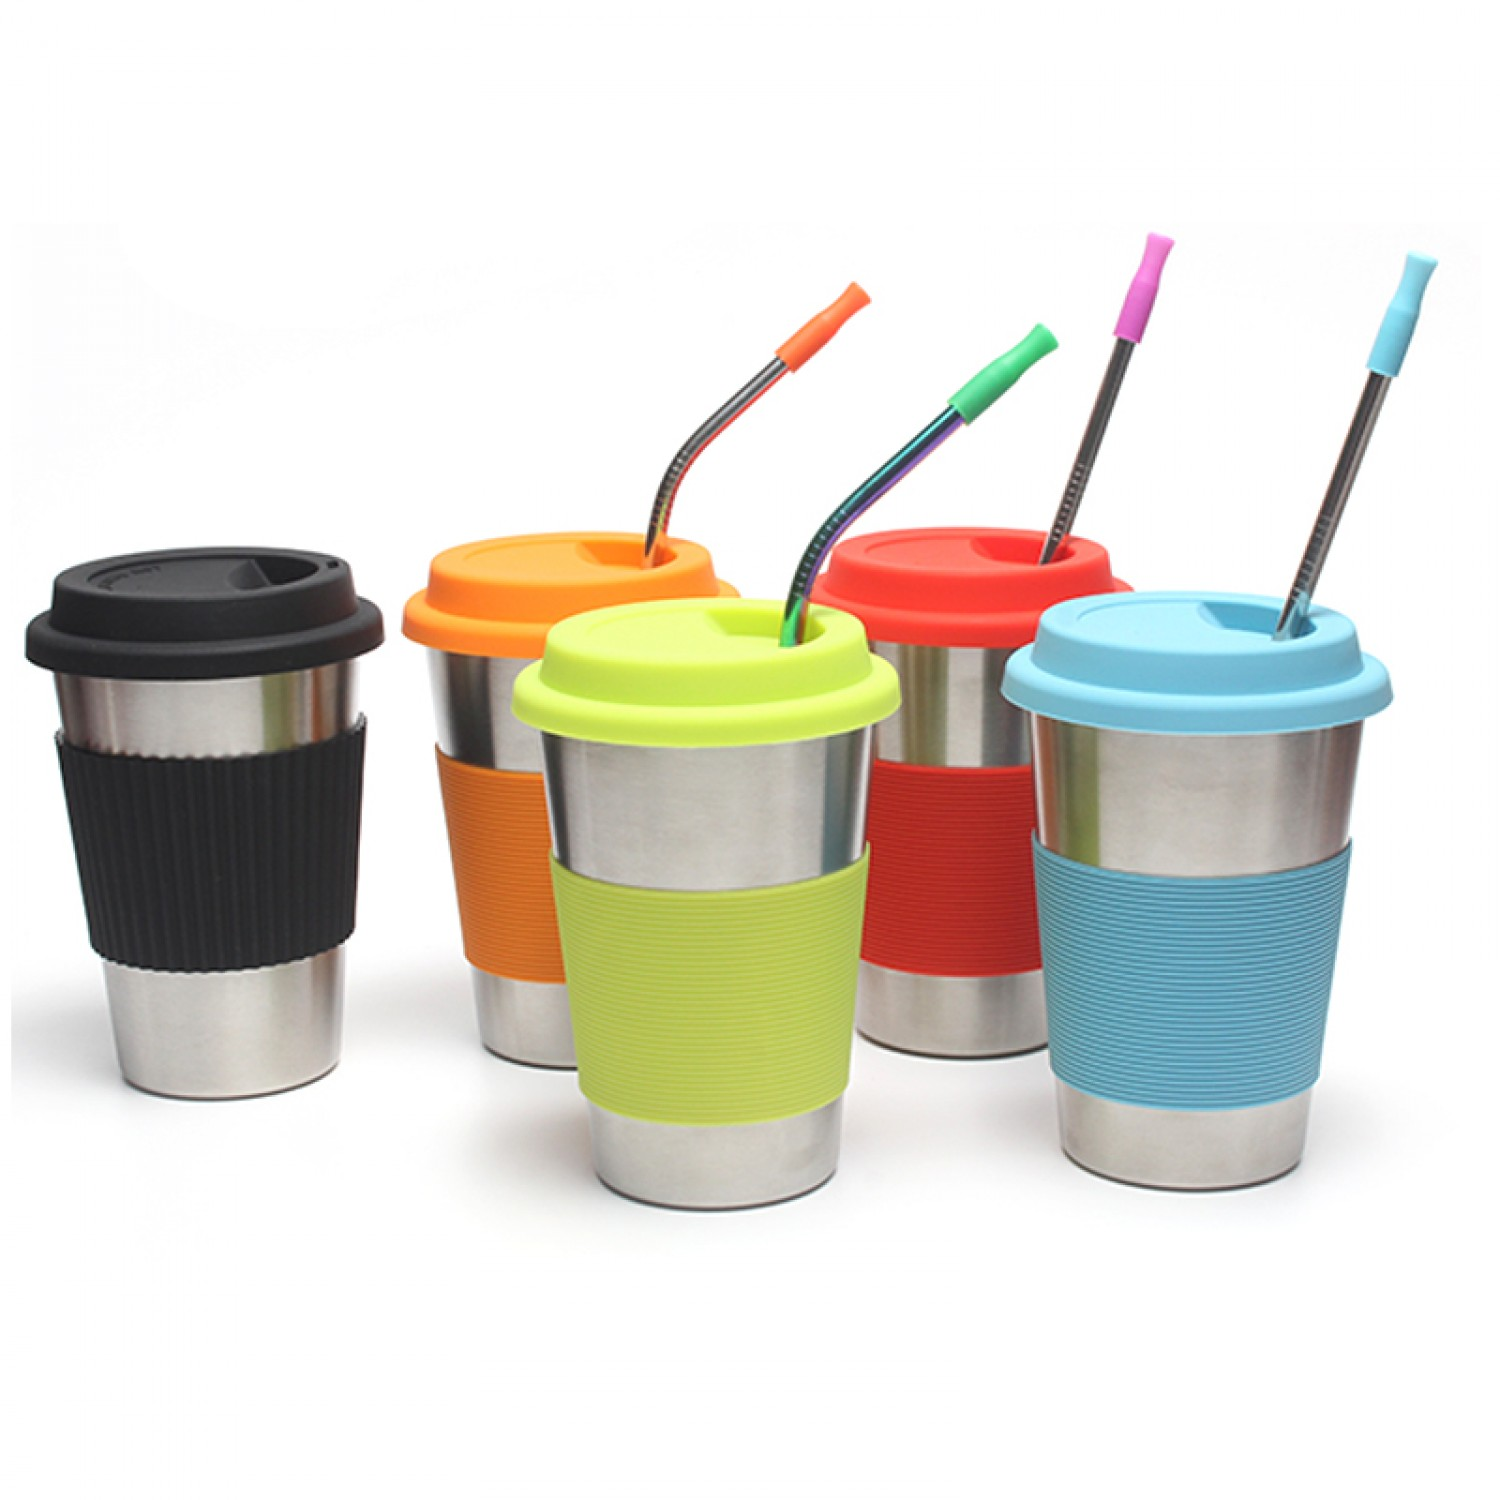 Stainless Steel Cups with Lids and Straws 16oz / 450ml